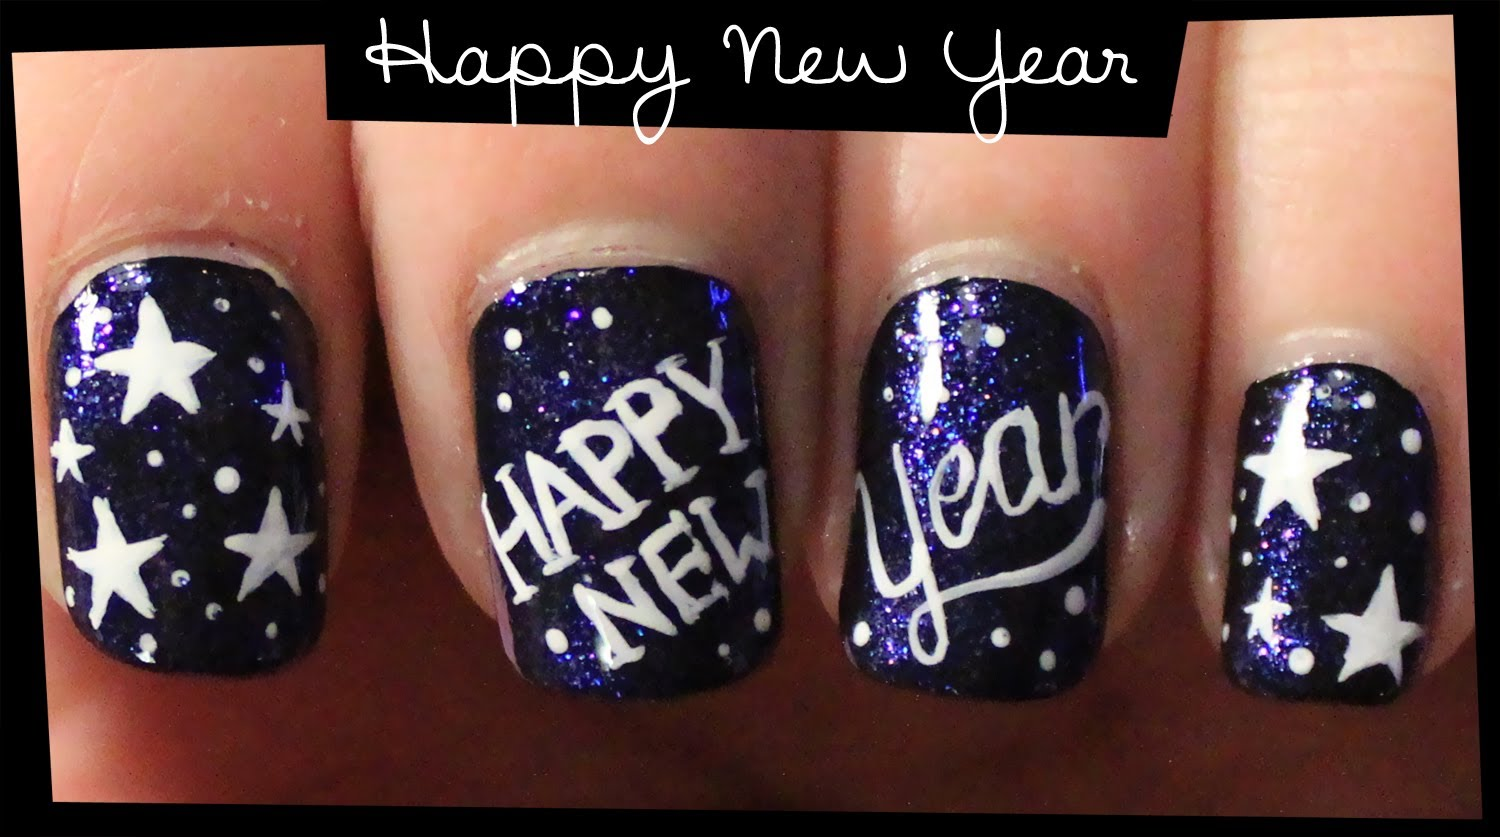 Stunning Nail Art Ideas For New Years Eve